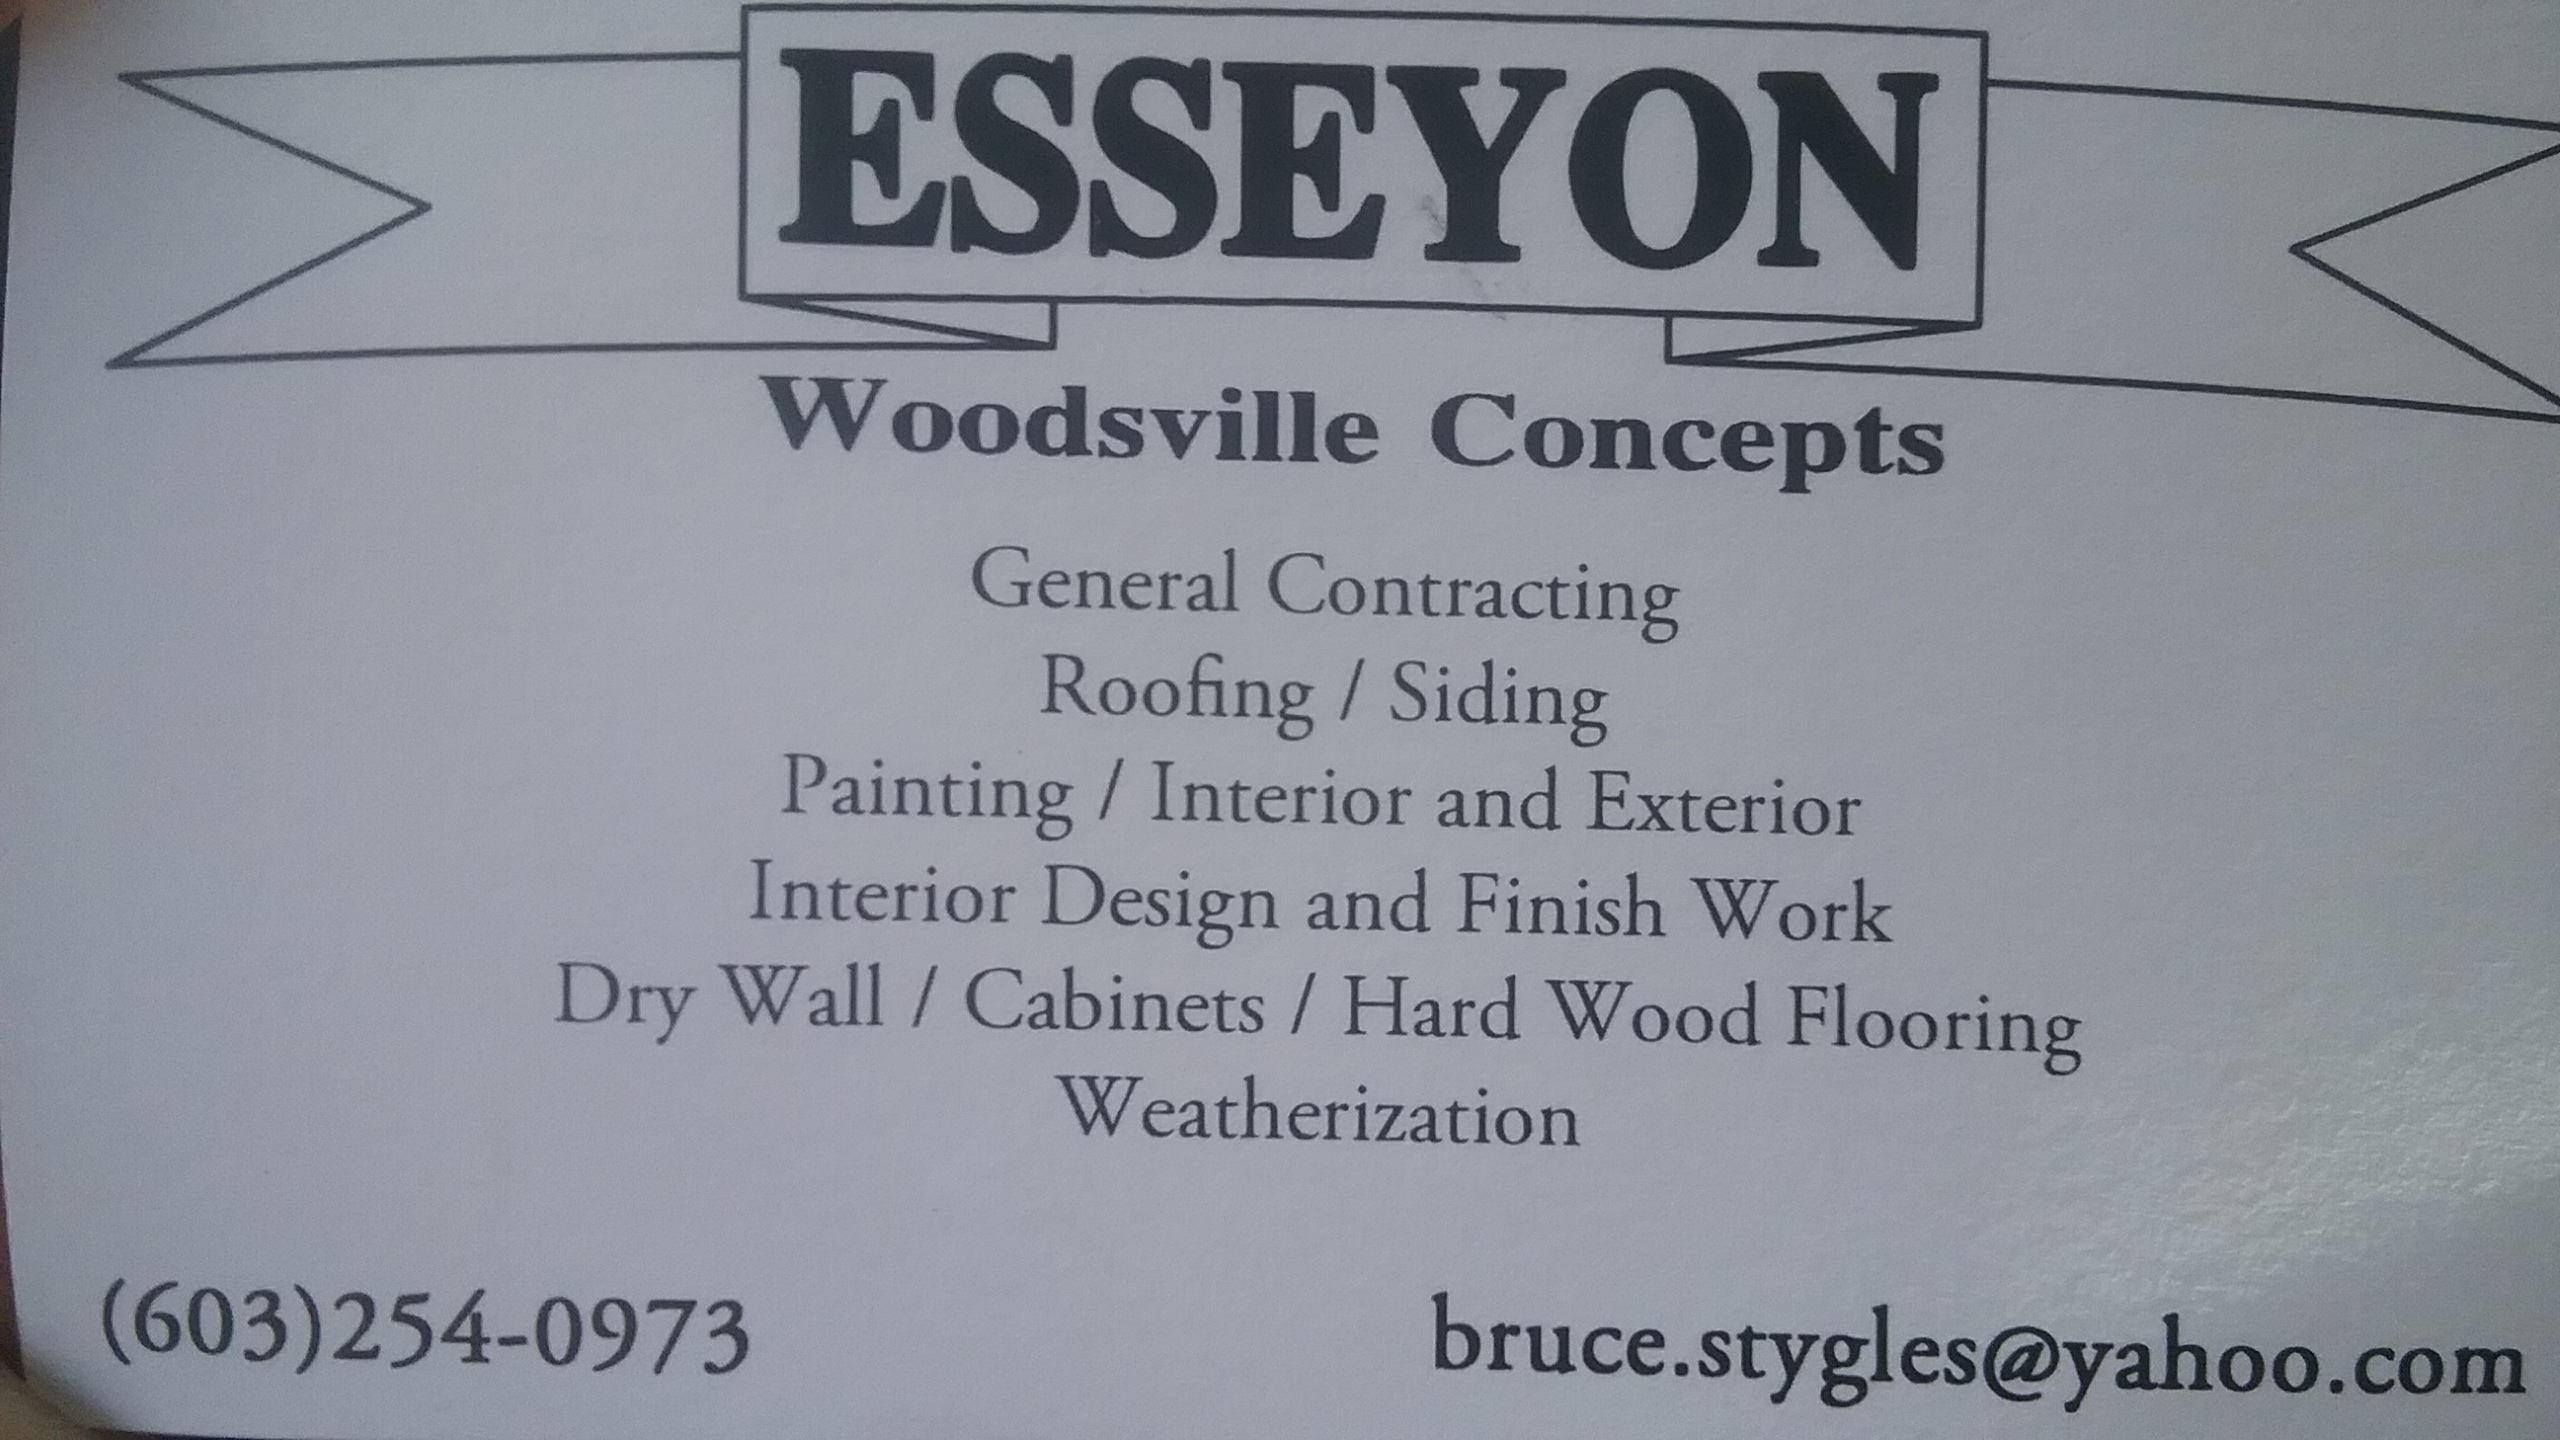 Woodsville Concepts image 3